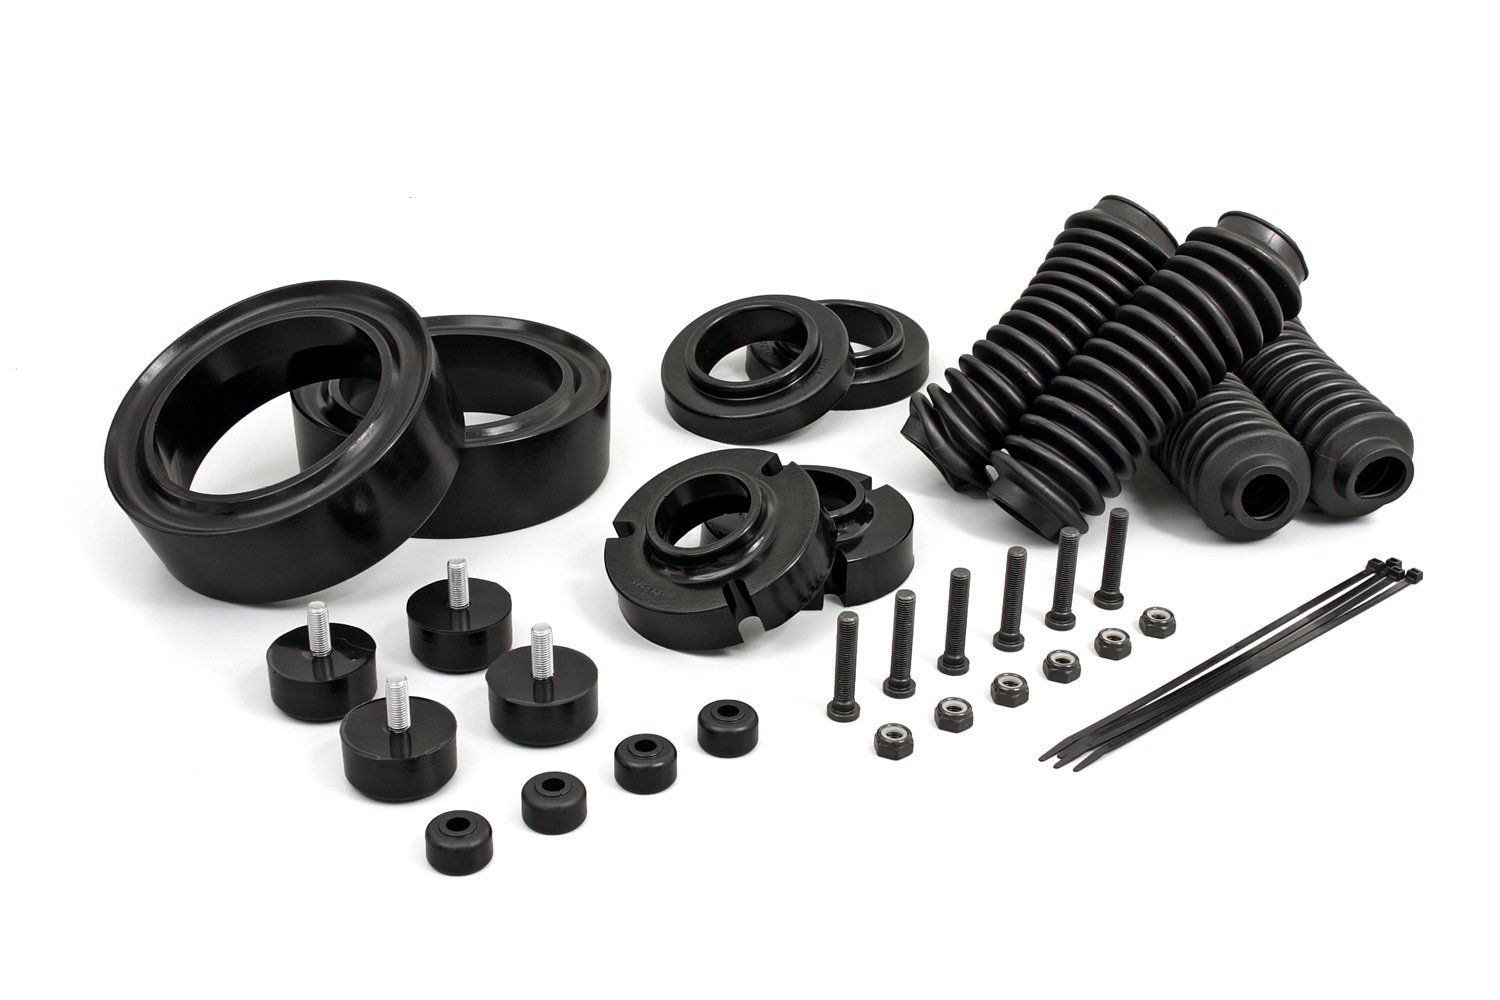 fits 2001 to 2006 2//4WD all cabs KT09110BK Toyota Sequoia 2.5 Lift Kit Made in America Toyota Sequoia 2.5 Lift Kit all transmissions Daystar